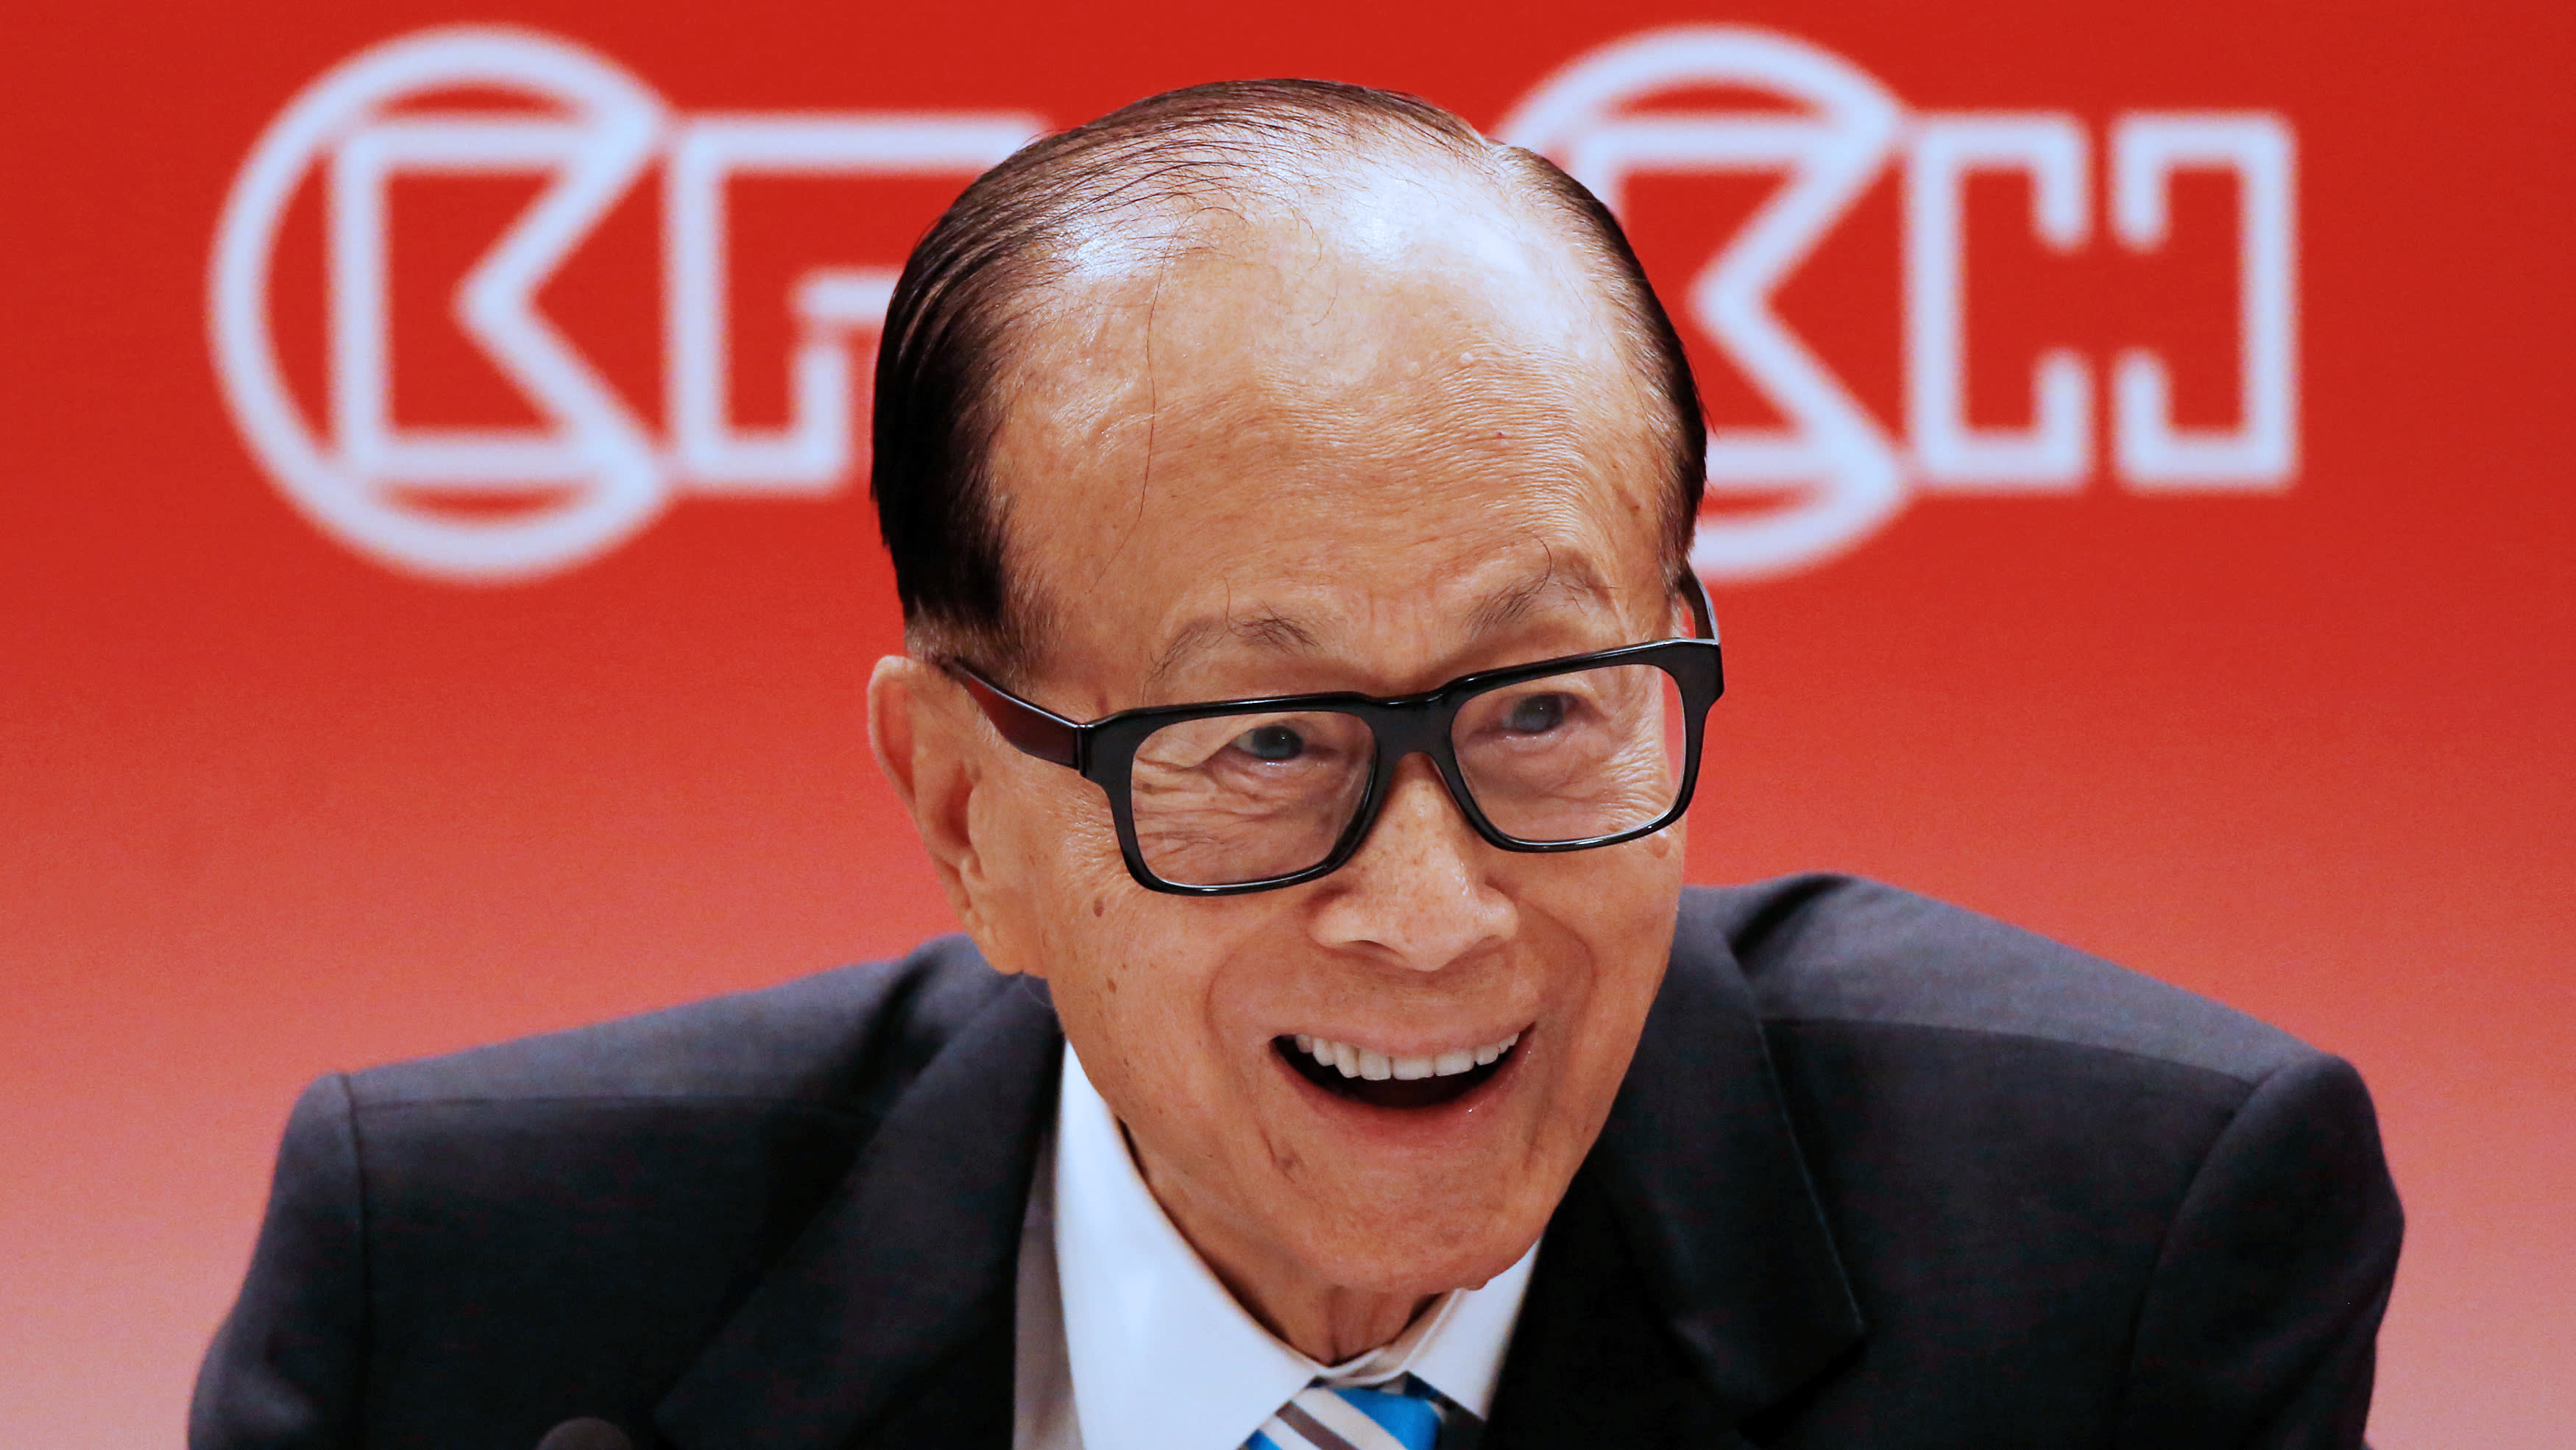 Li Ka-shing |Bakkt | Bitcoin | Bitcoin Futures Exchange